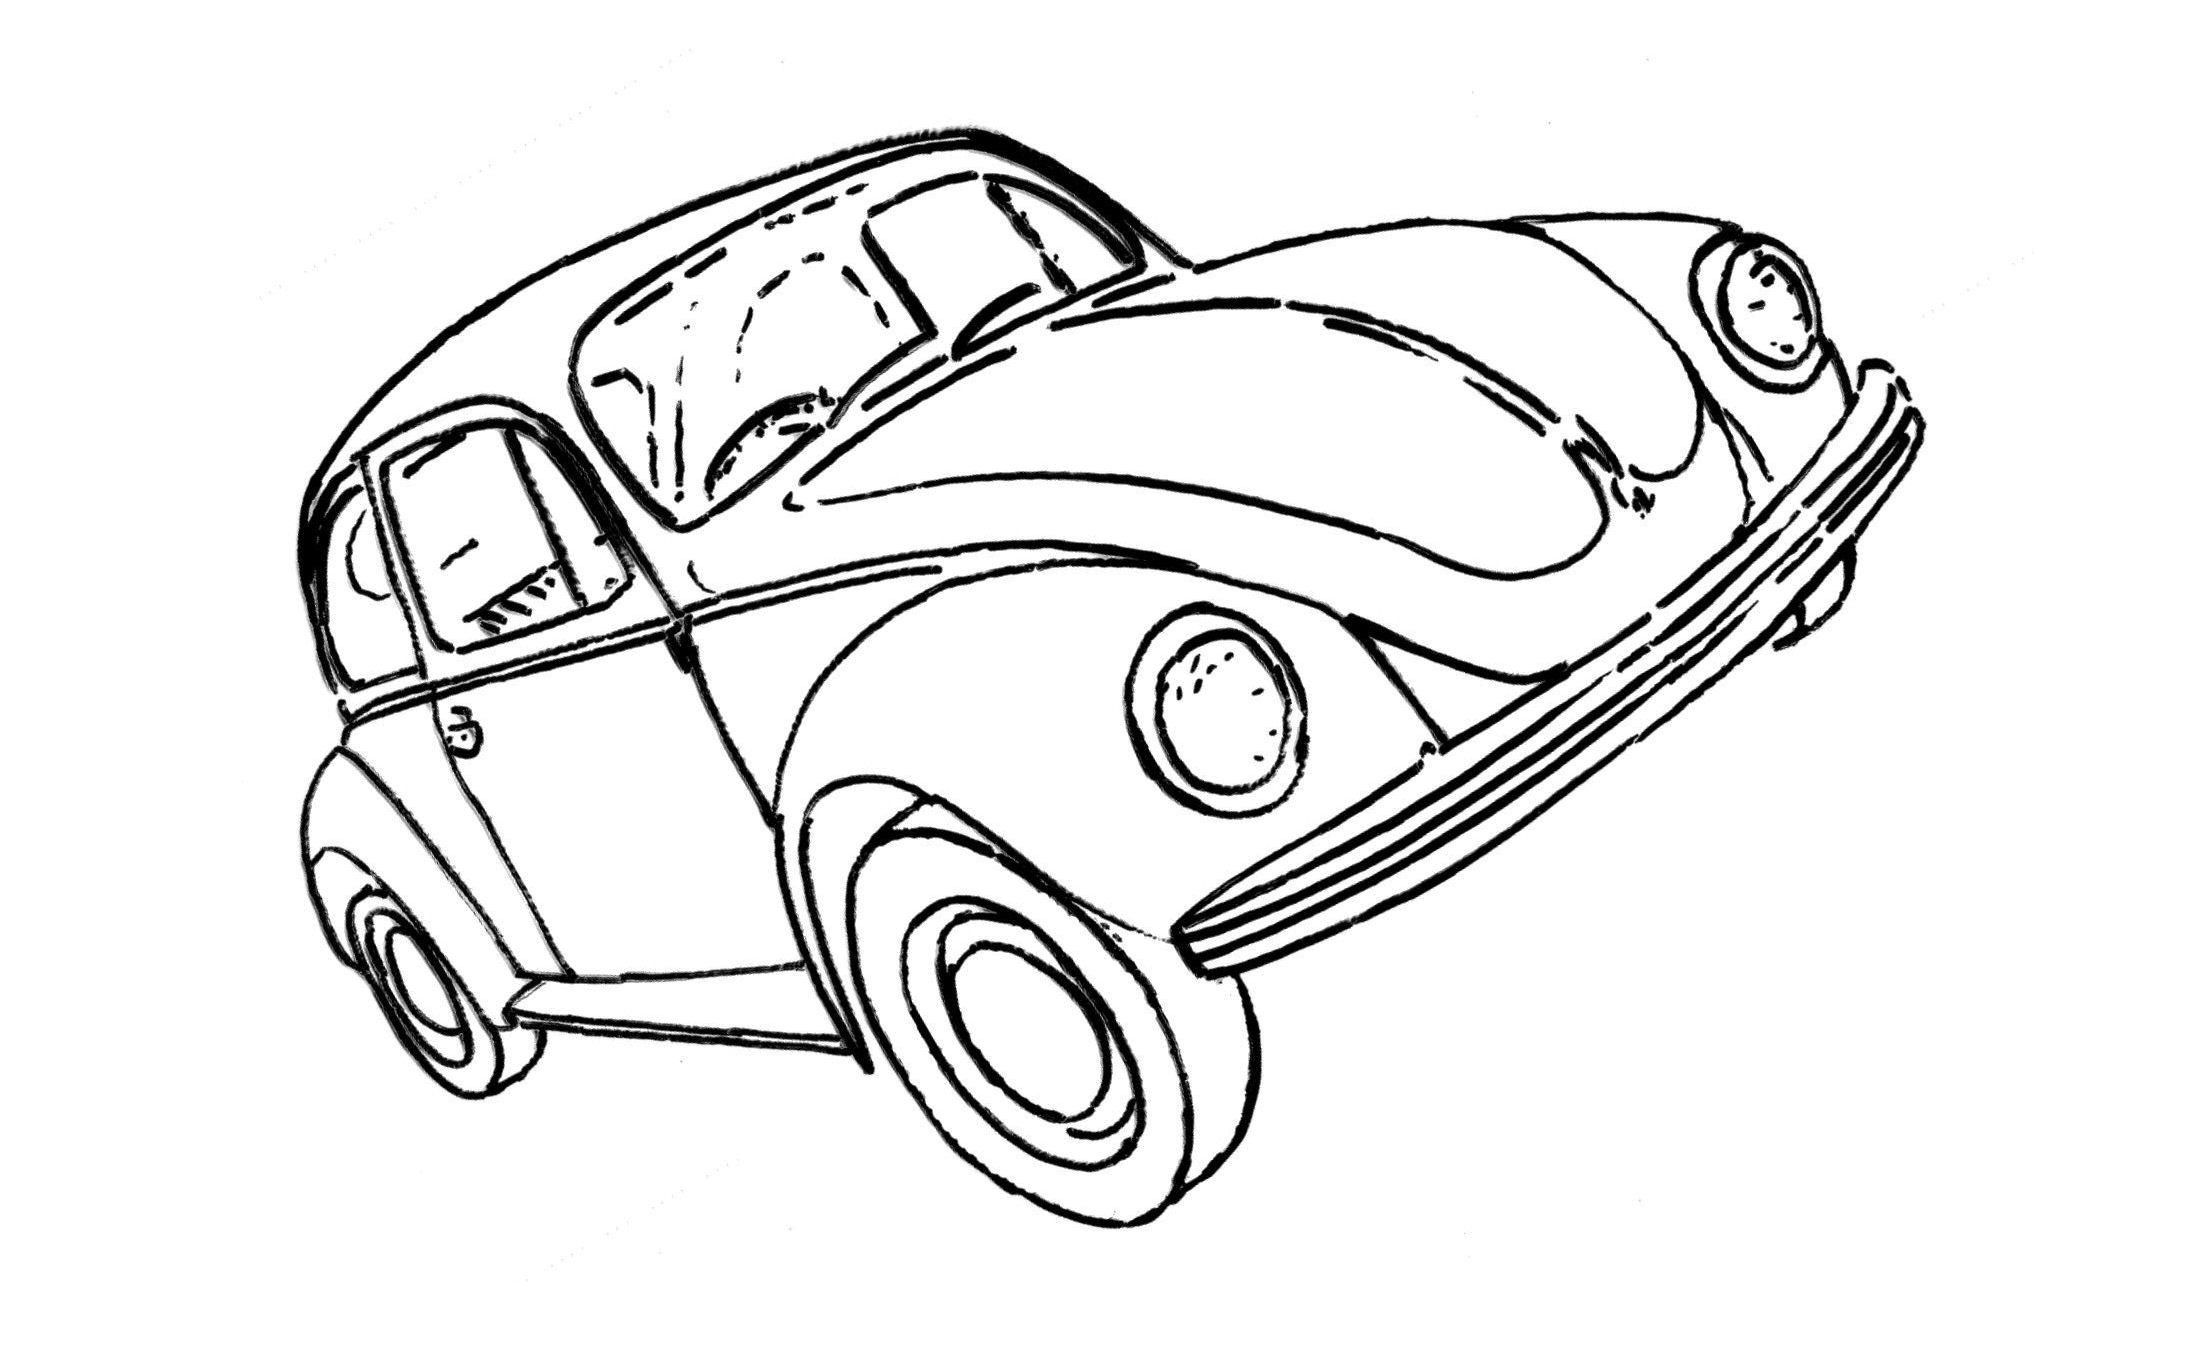 Vw Beetle Drawing At Free For Personal Use Clic Volkswagen Bug 2190x1345